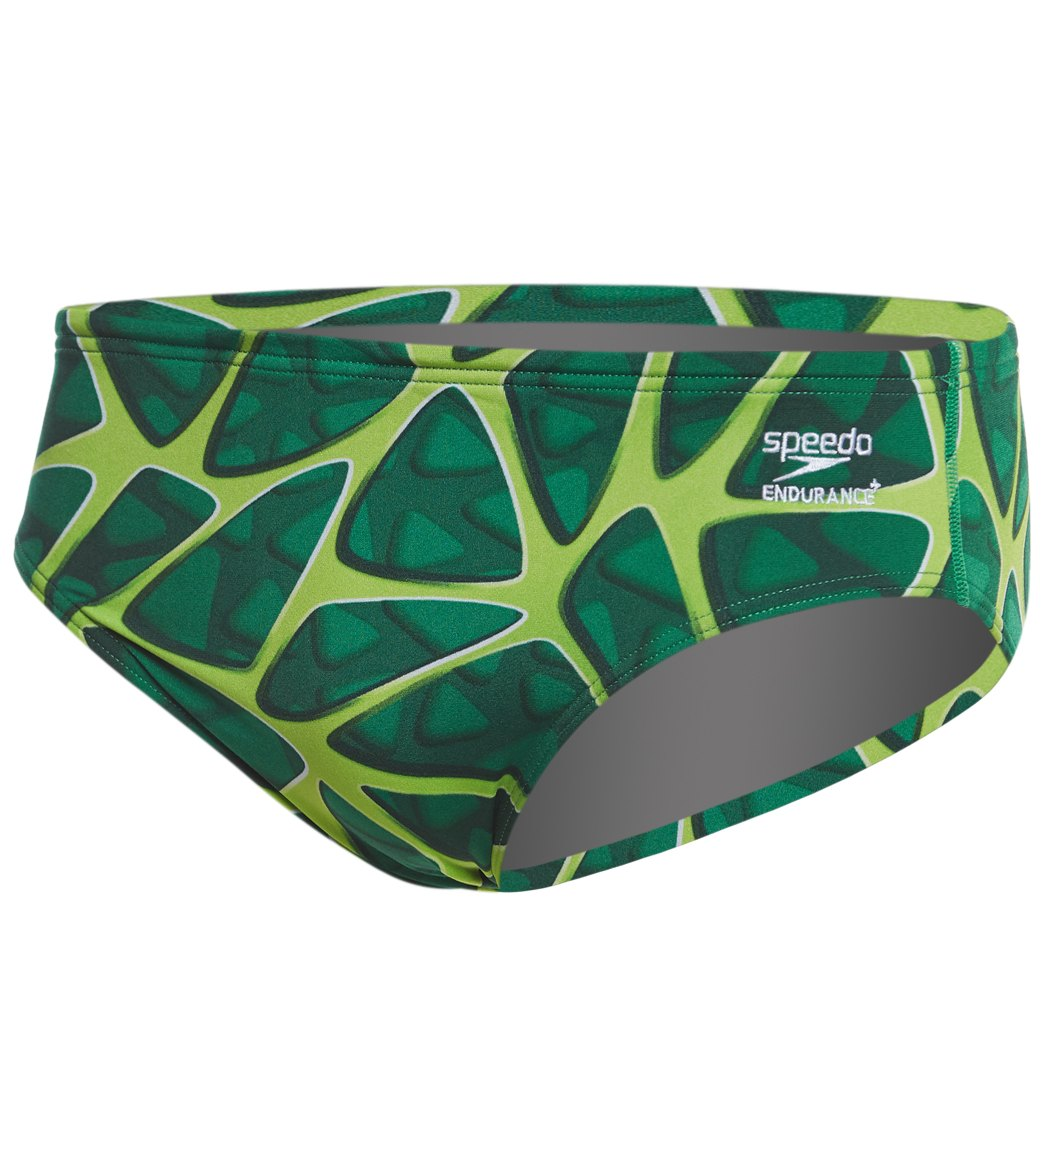 Speedo Endurance+ Men s Caged Out Brief Swimsuit at SwimOutlet.com afb640d0c67e